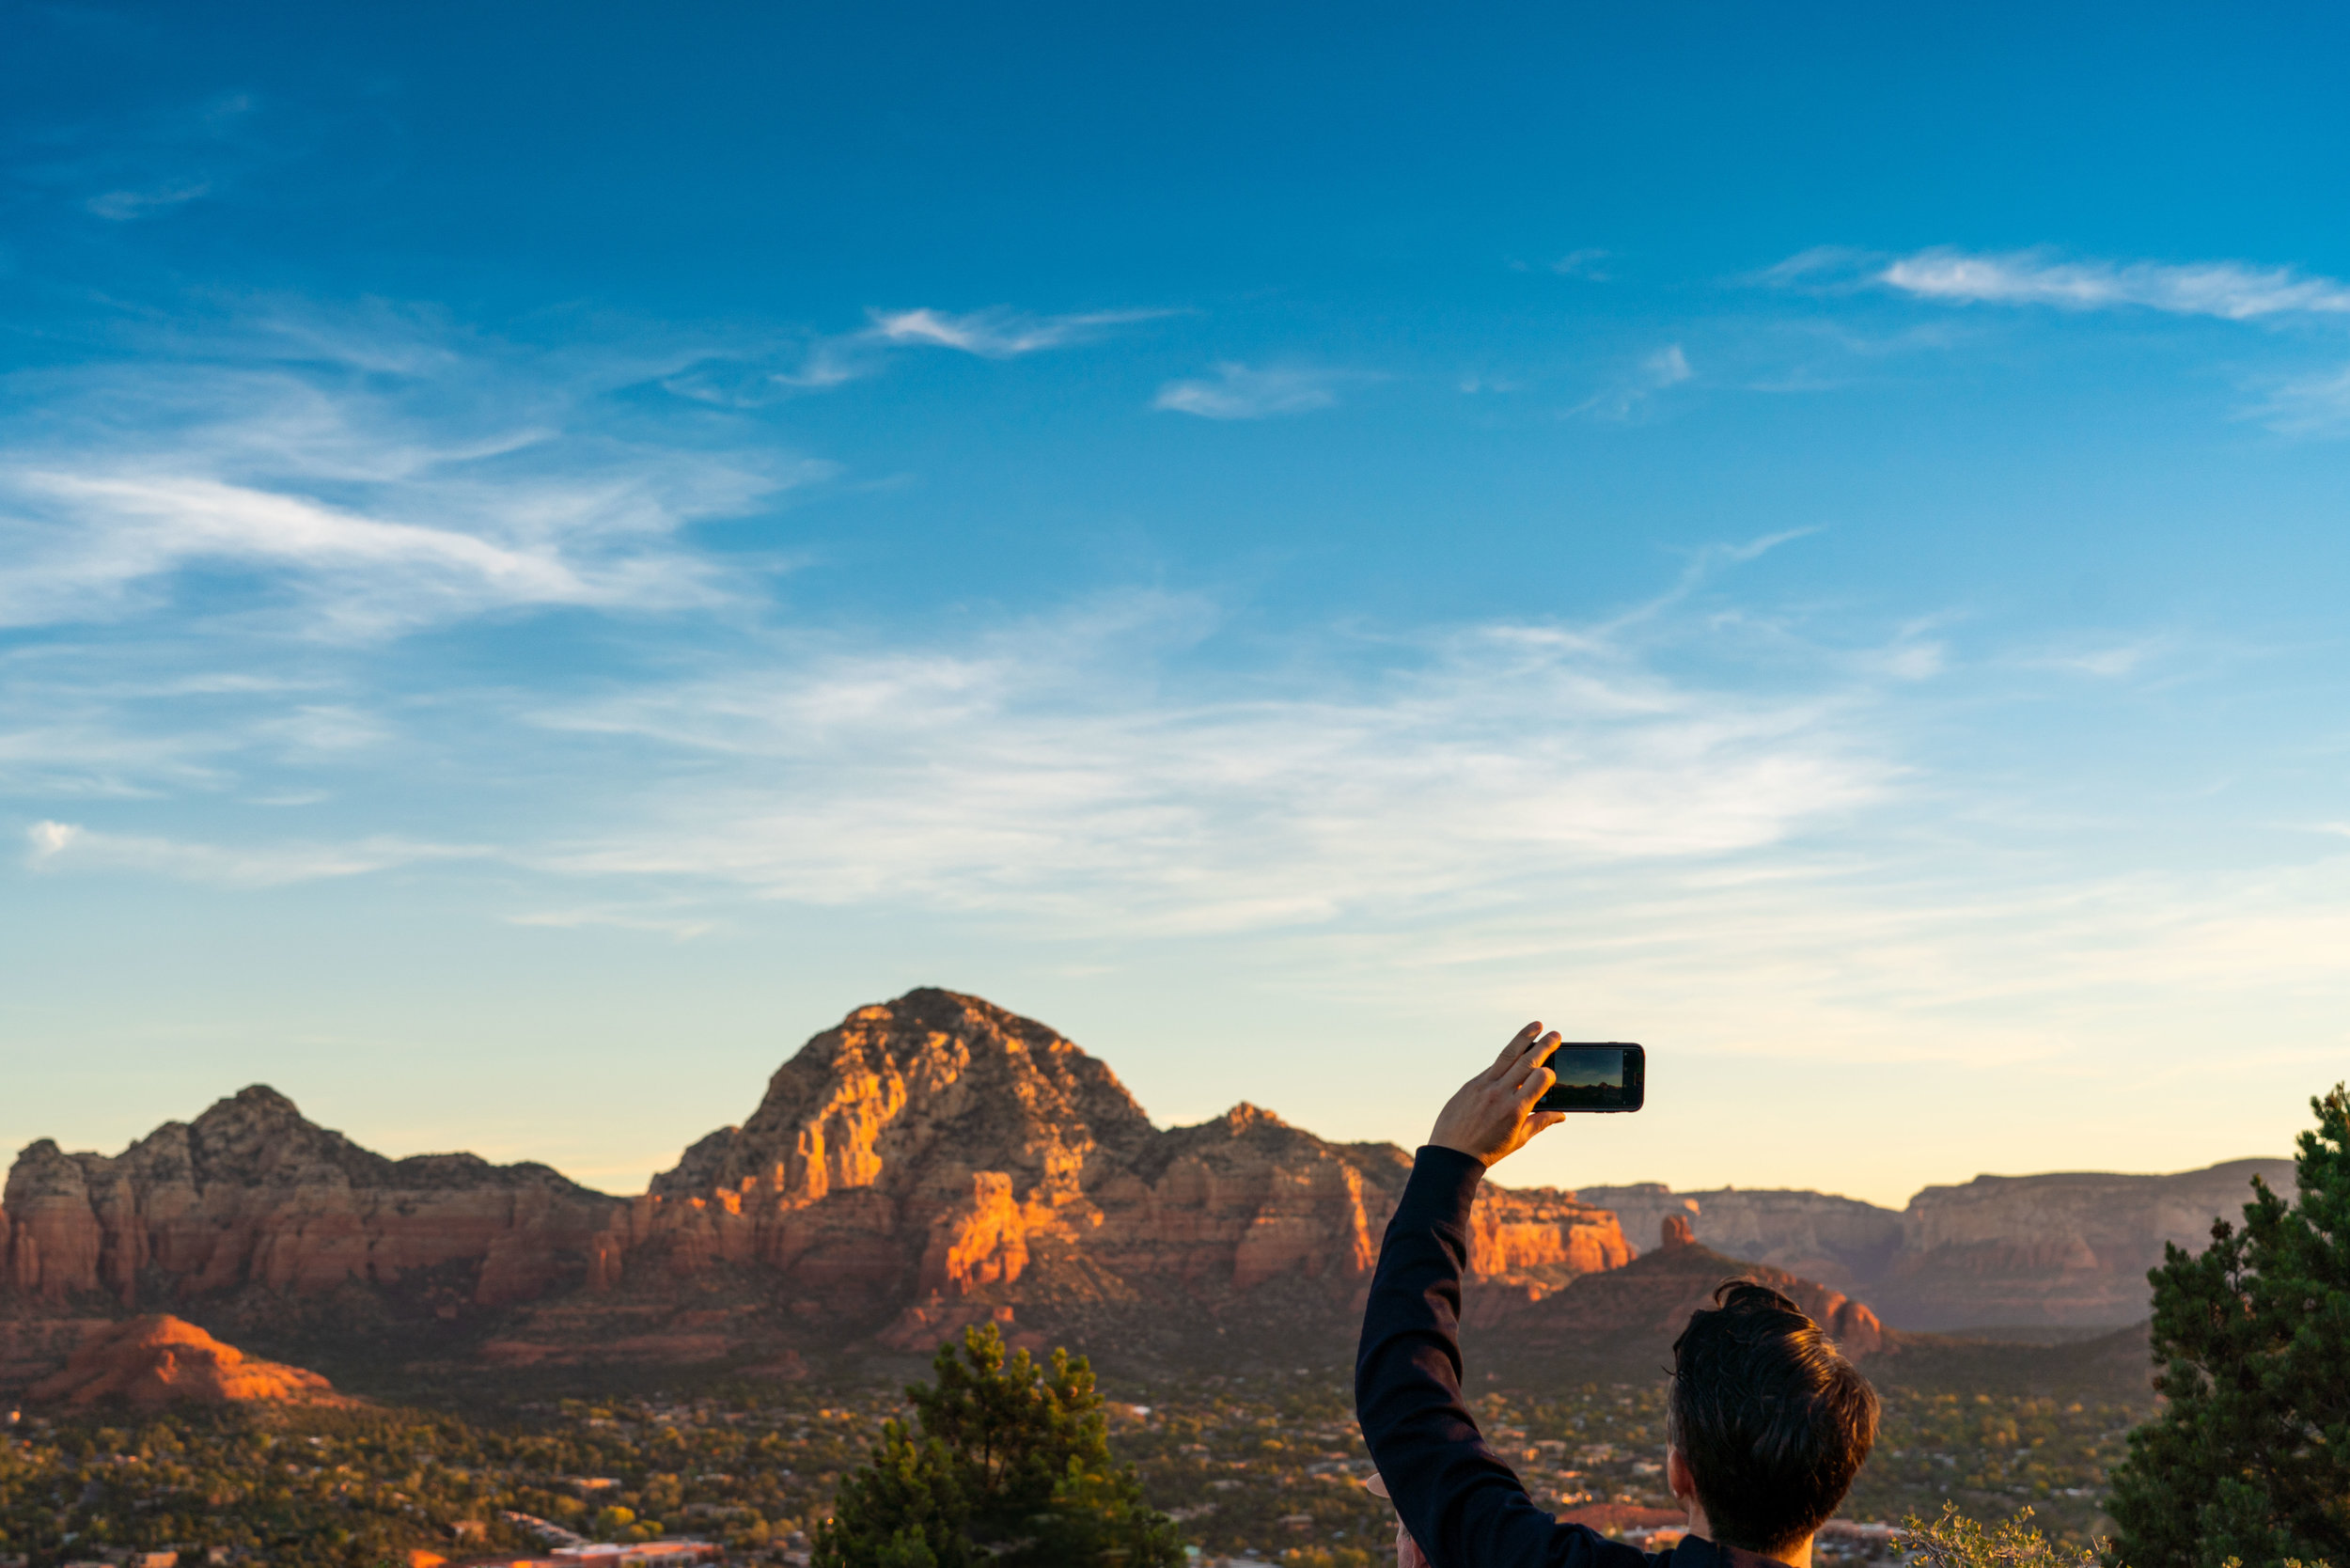 Pictures of people taking pictures -